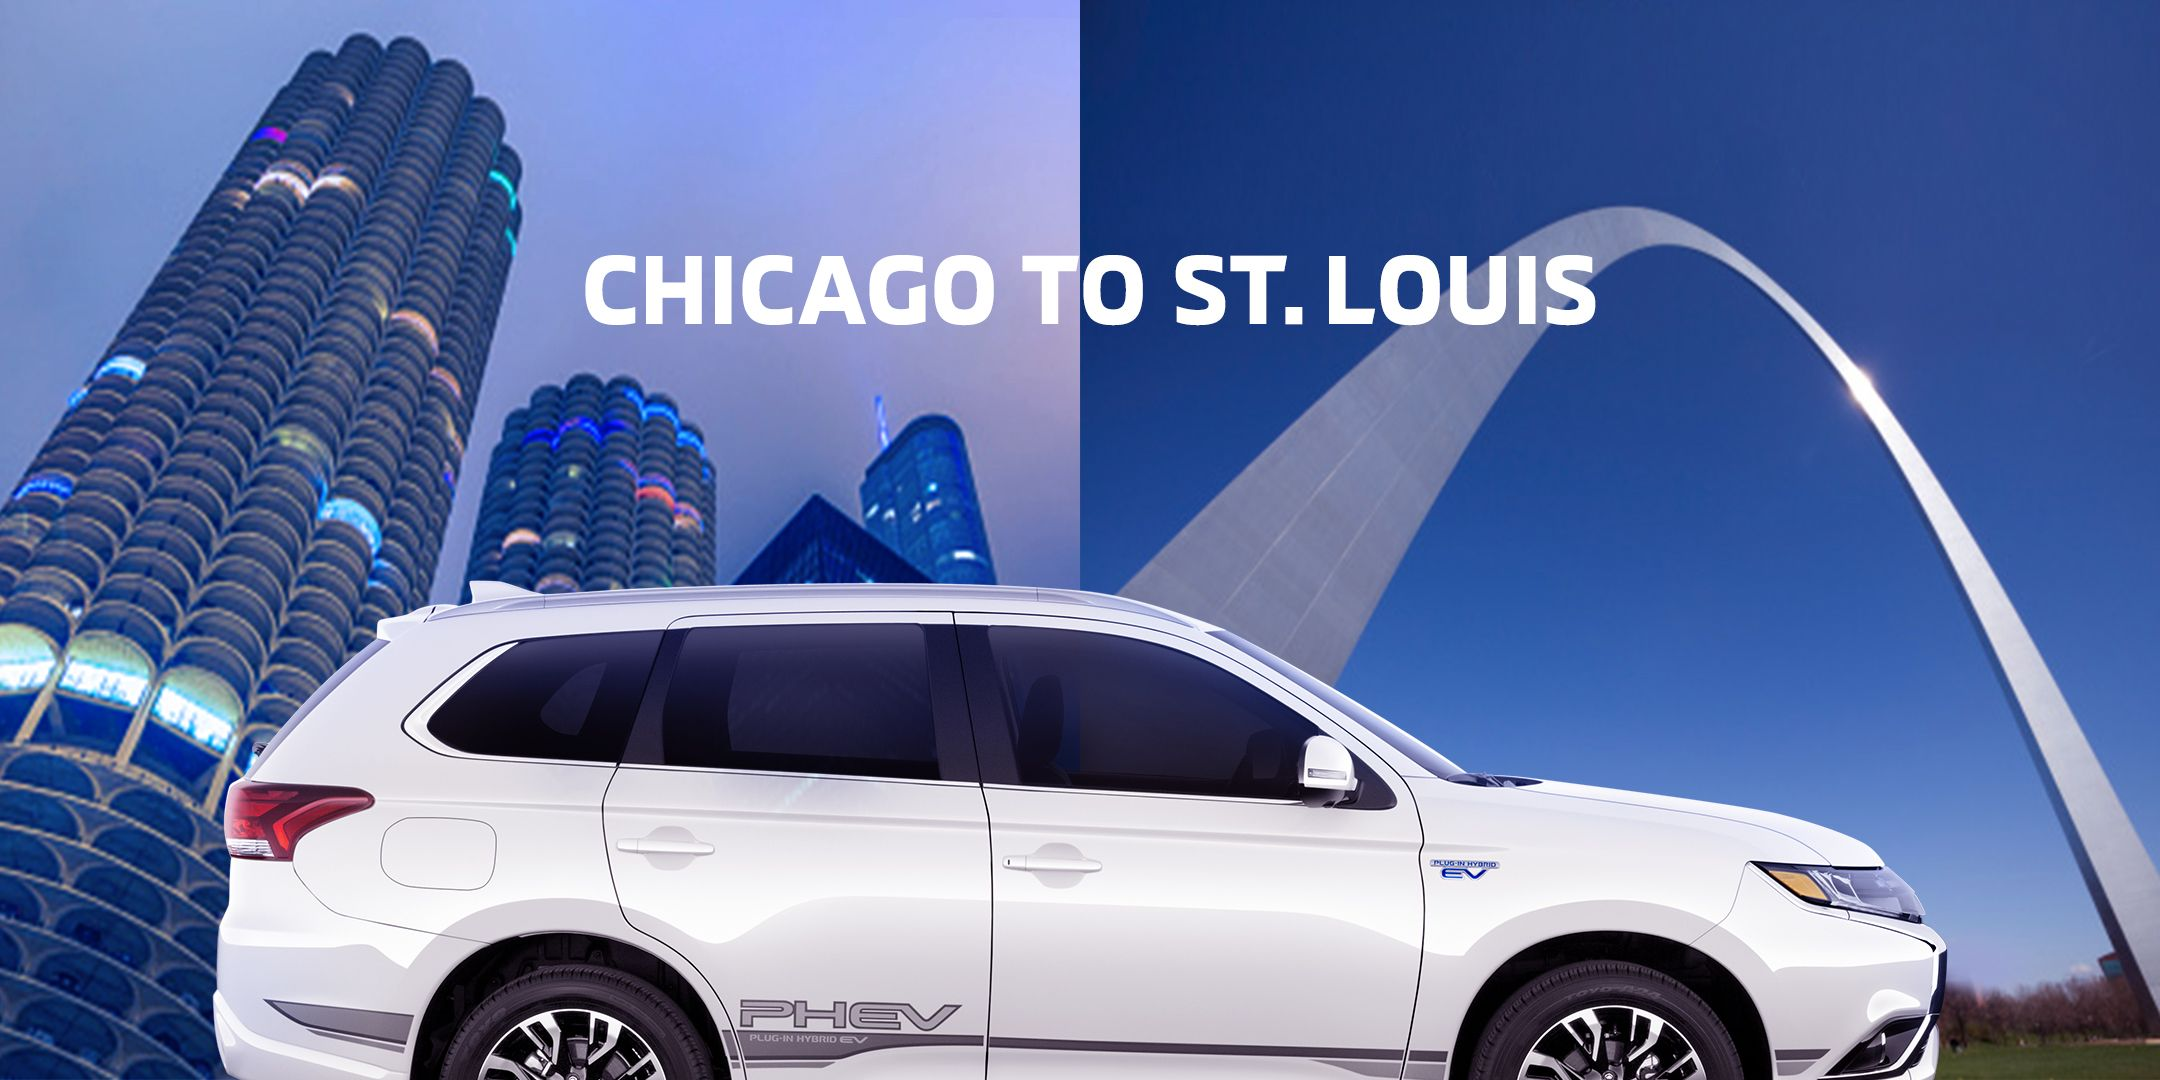 The Outlander Phev A Charge Ready To Go From Chicago To St Louis